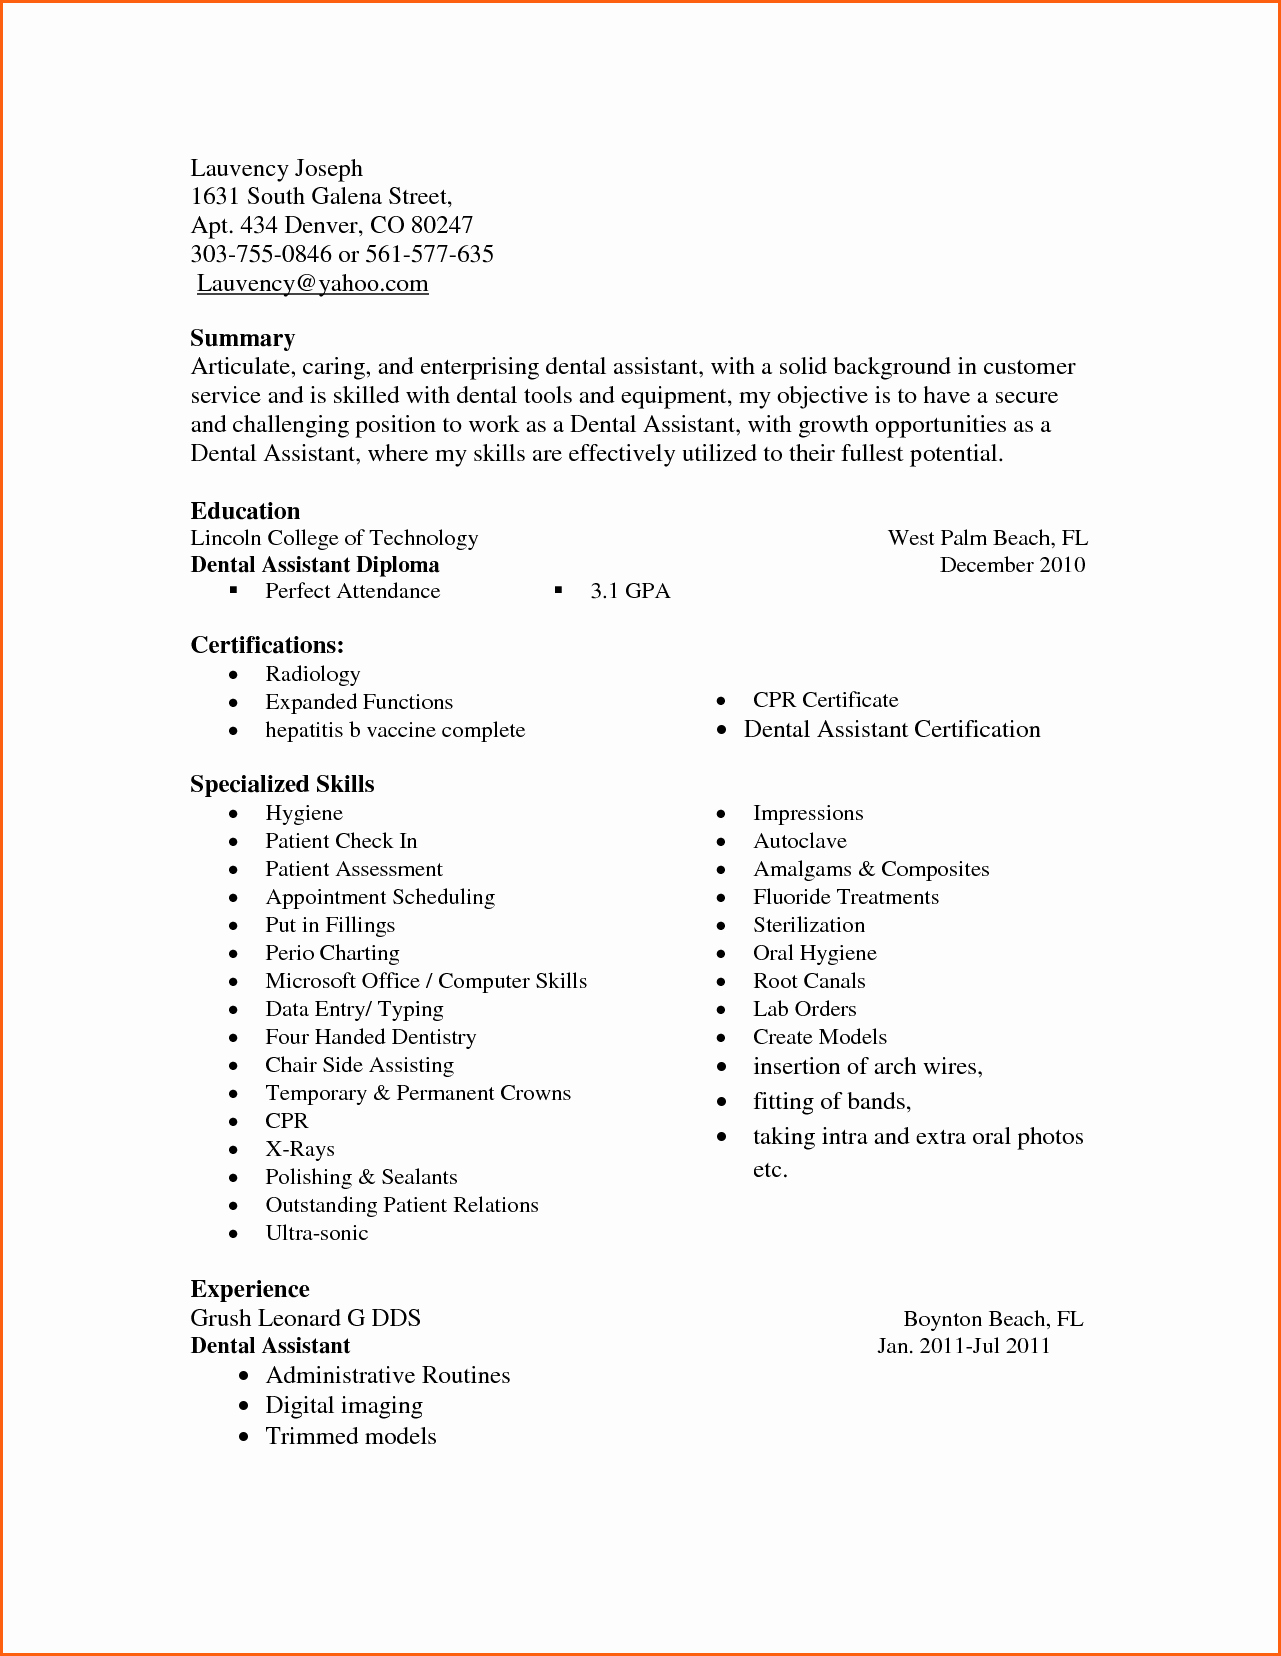 Microsoft Office Skills Resume Template Best Of List Microsoft Fice Skills Resume